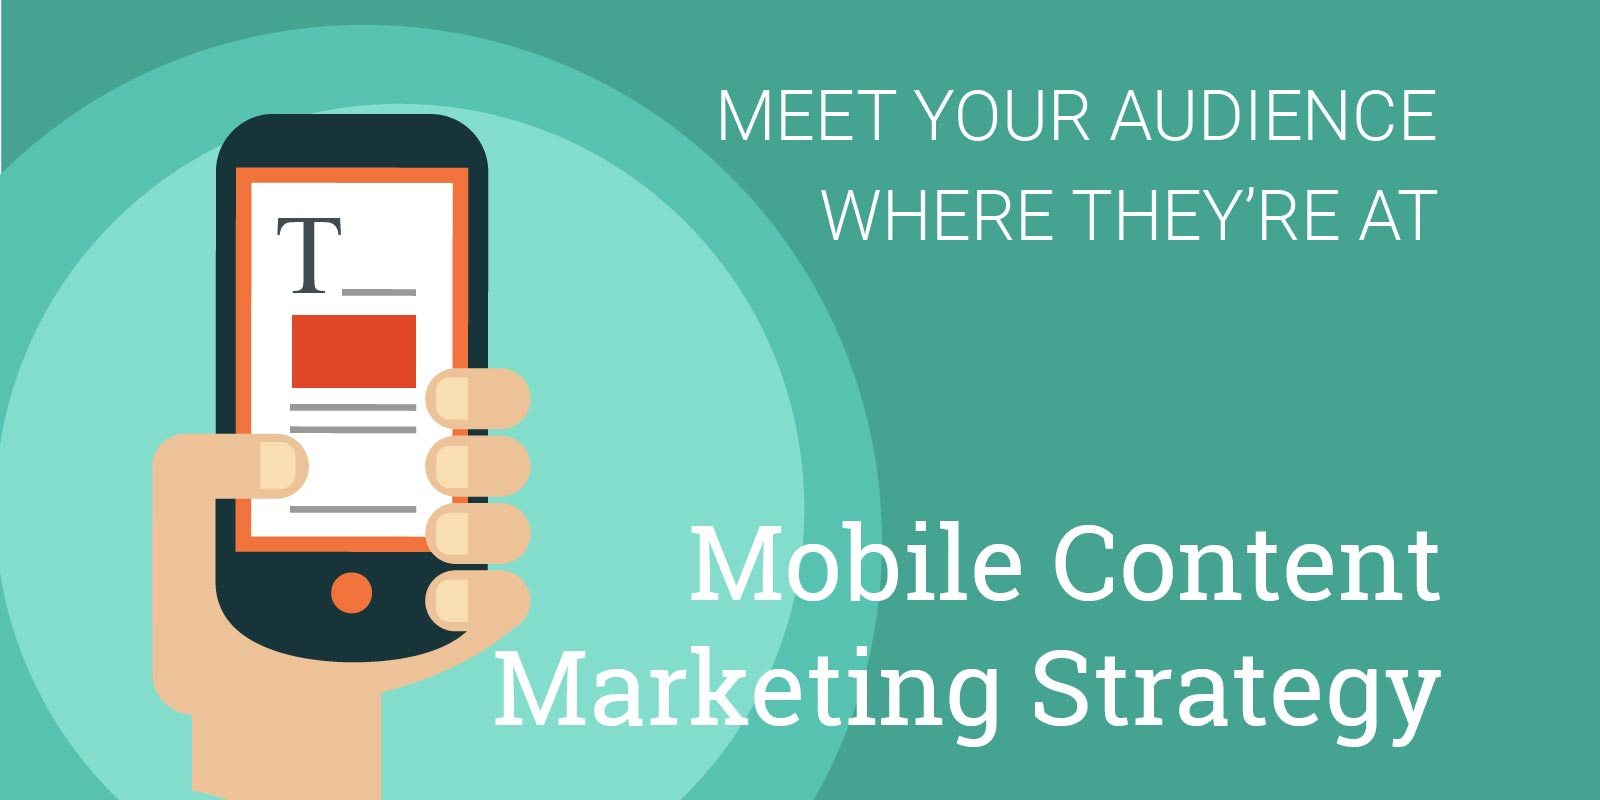 mobile-content-marketing-strategy.jpg